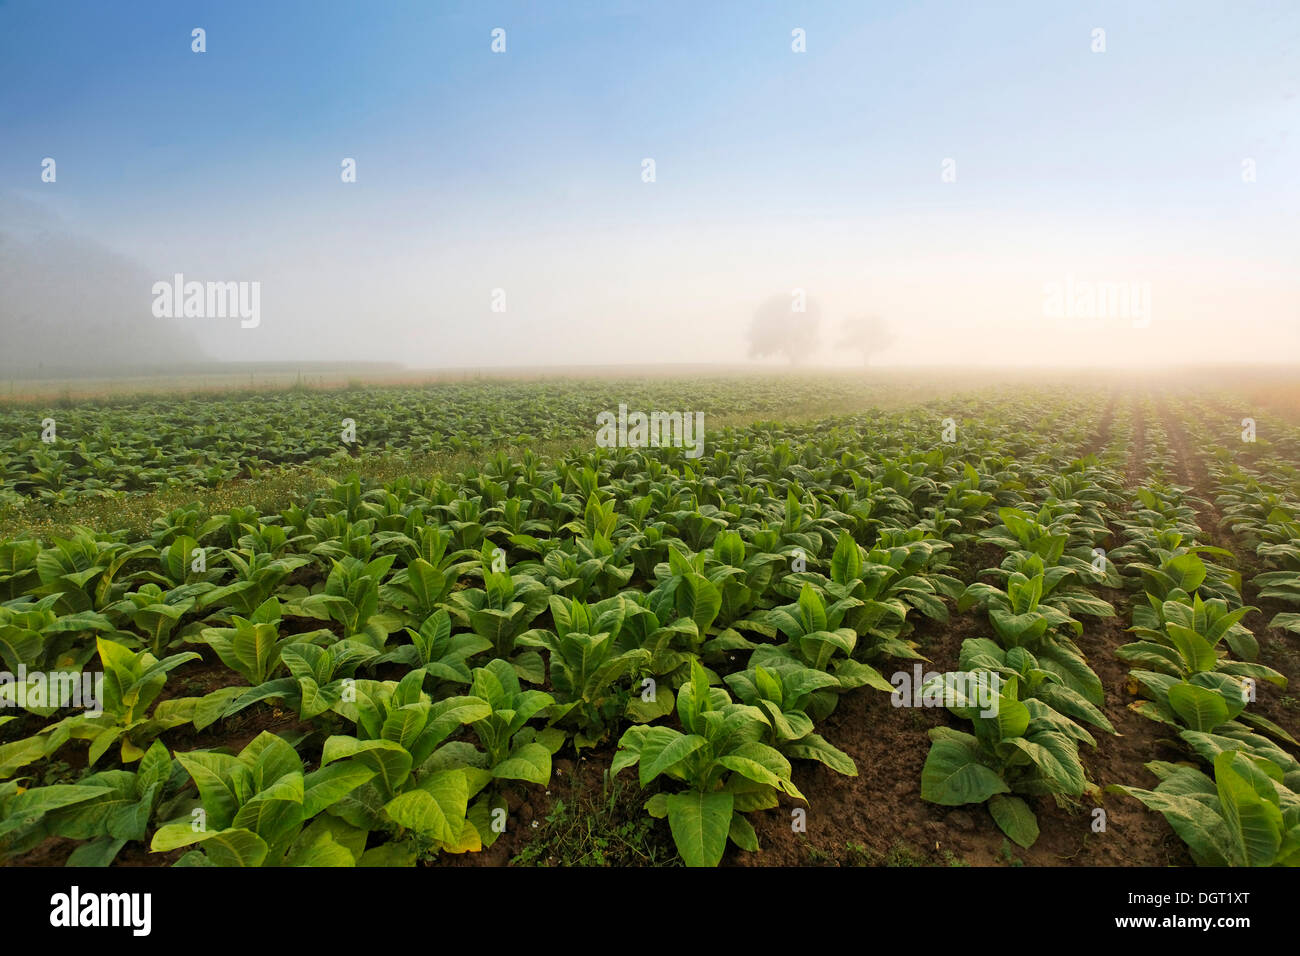 Tobacco field in the morning mist, on Dinkelberg mountain, near Minseln, Rheinfelden - Baden, Baden-Wuerttemberg - Stock Image